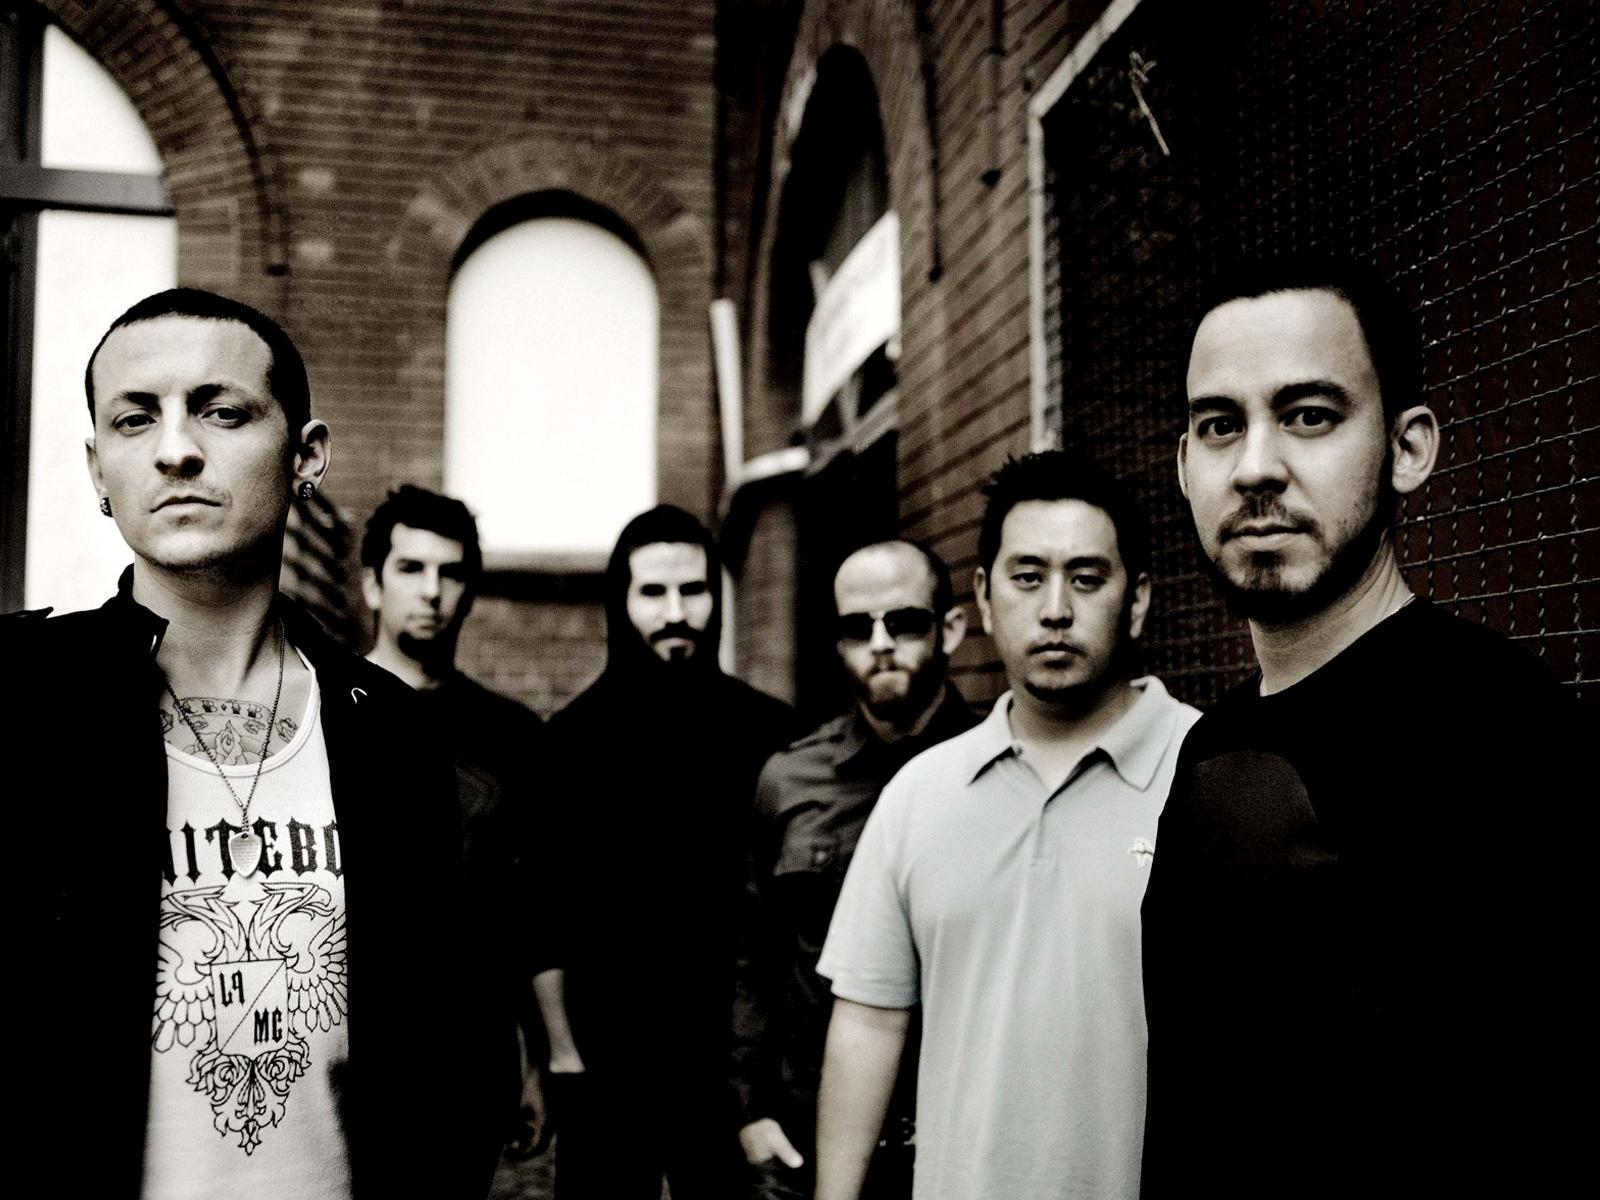 linkin park rock music band hd wallpapers hd wallpapers